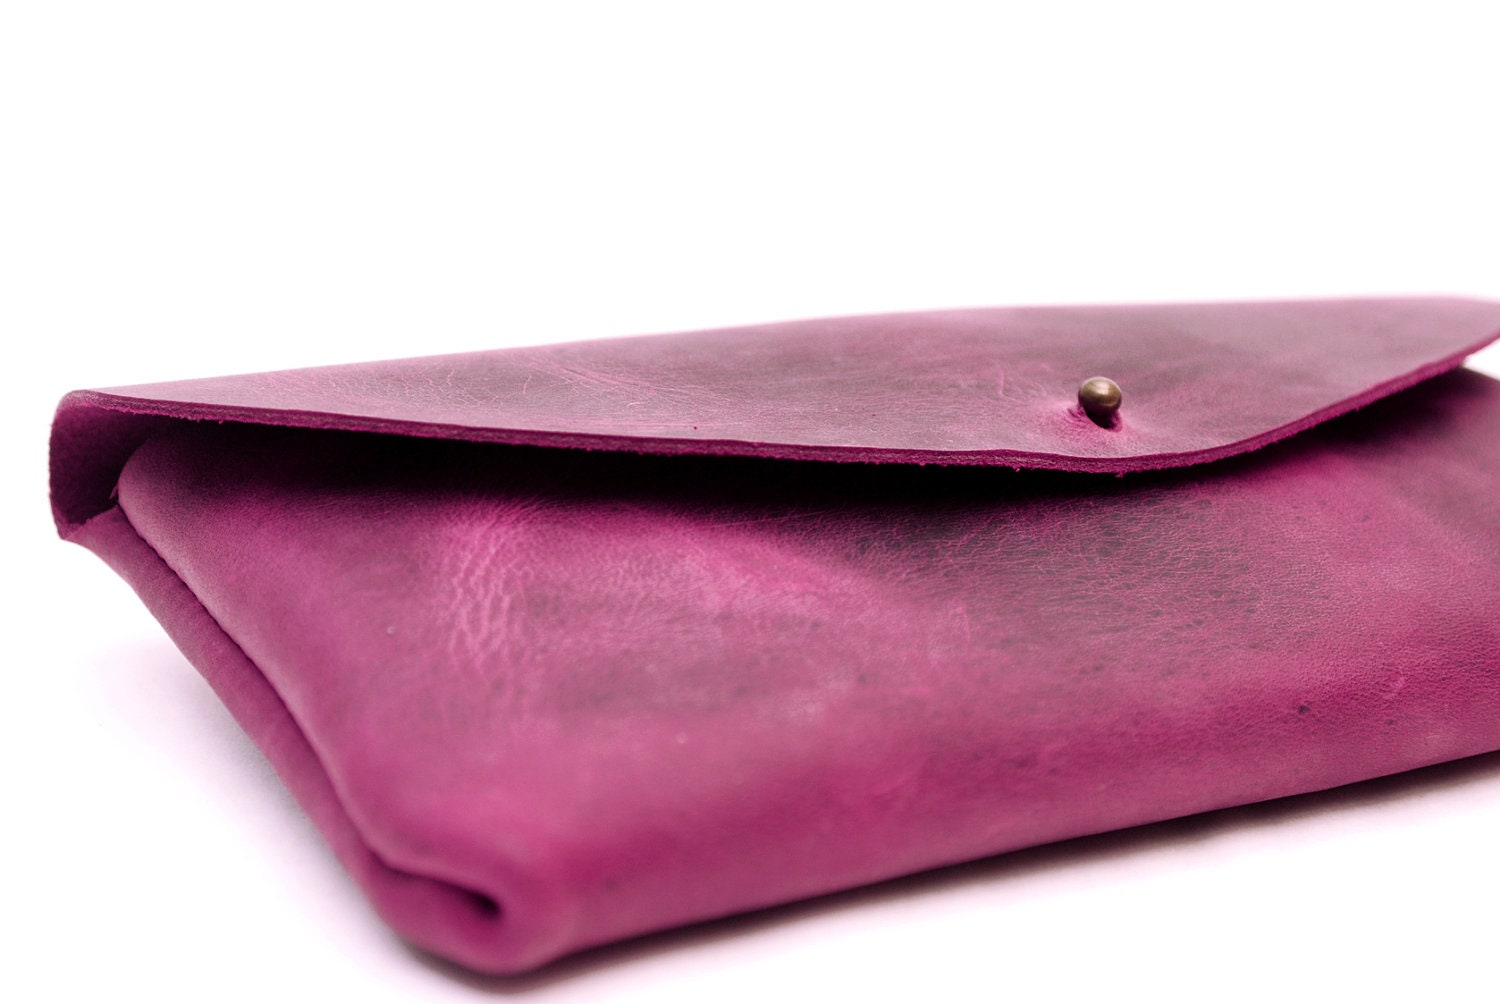 Leather clutch bag. Oiled leather handbag. Bags and purses.